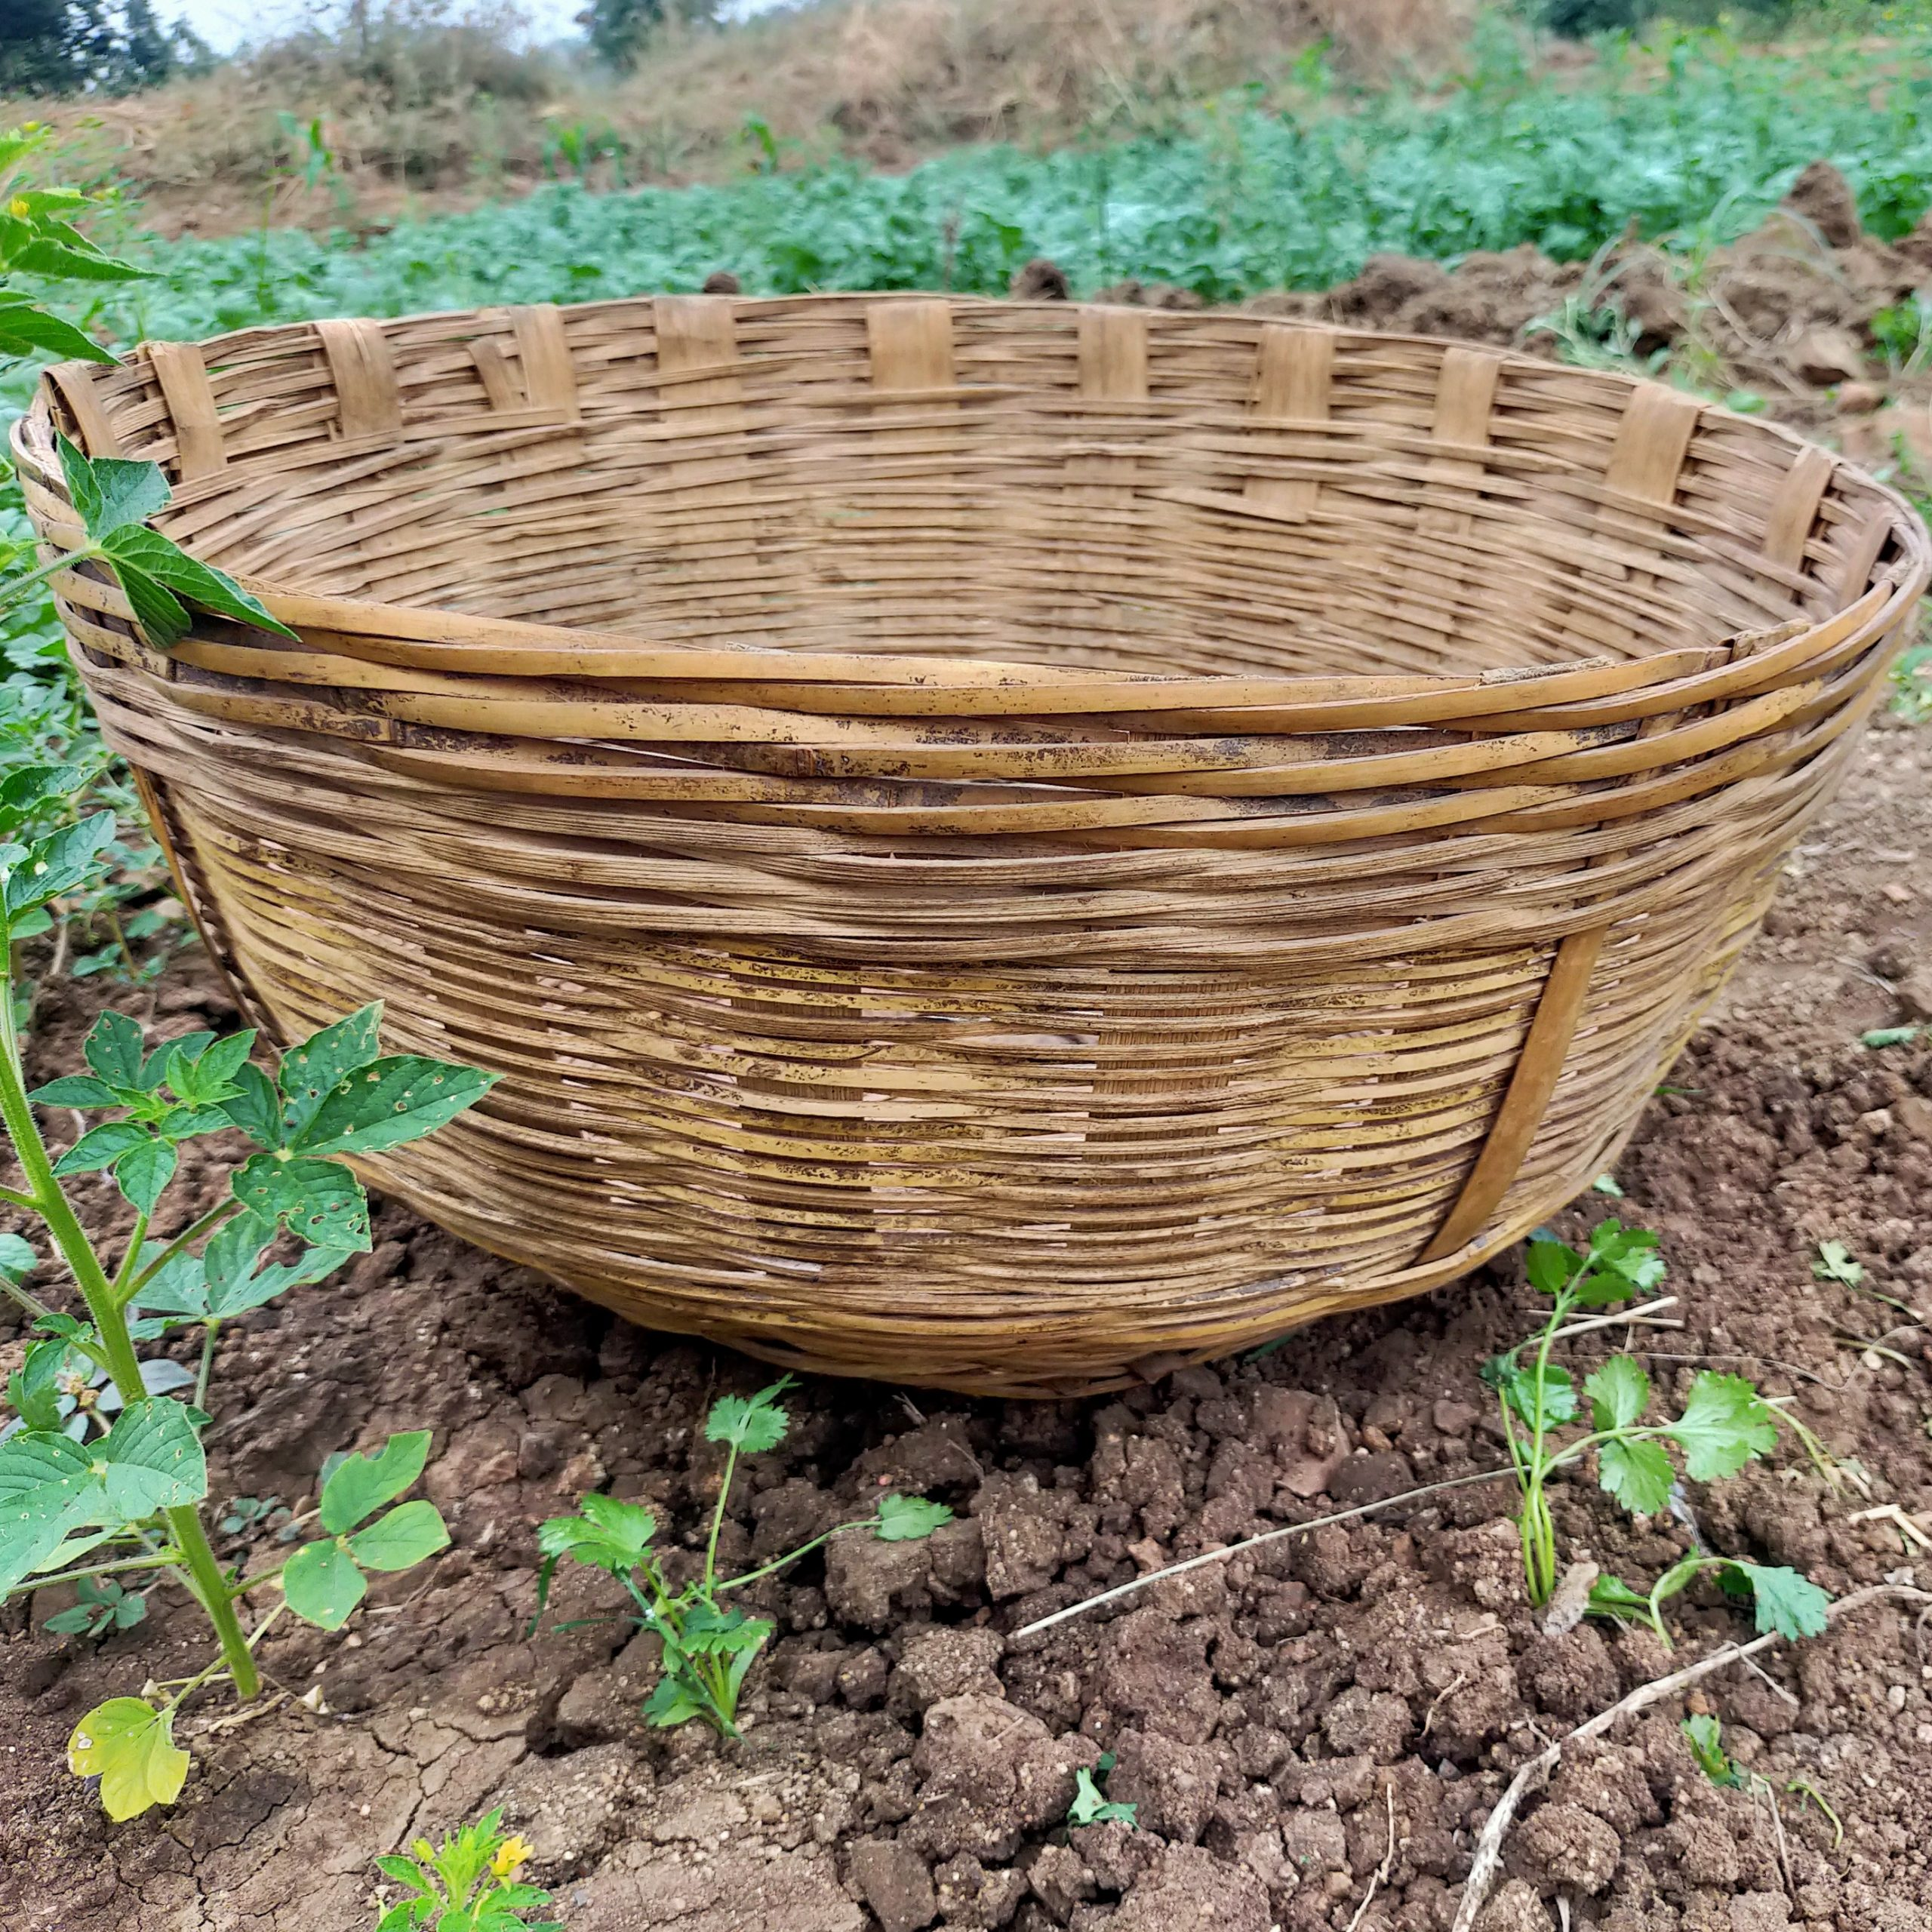 Wooden basket in agriculture field